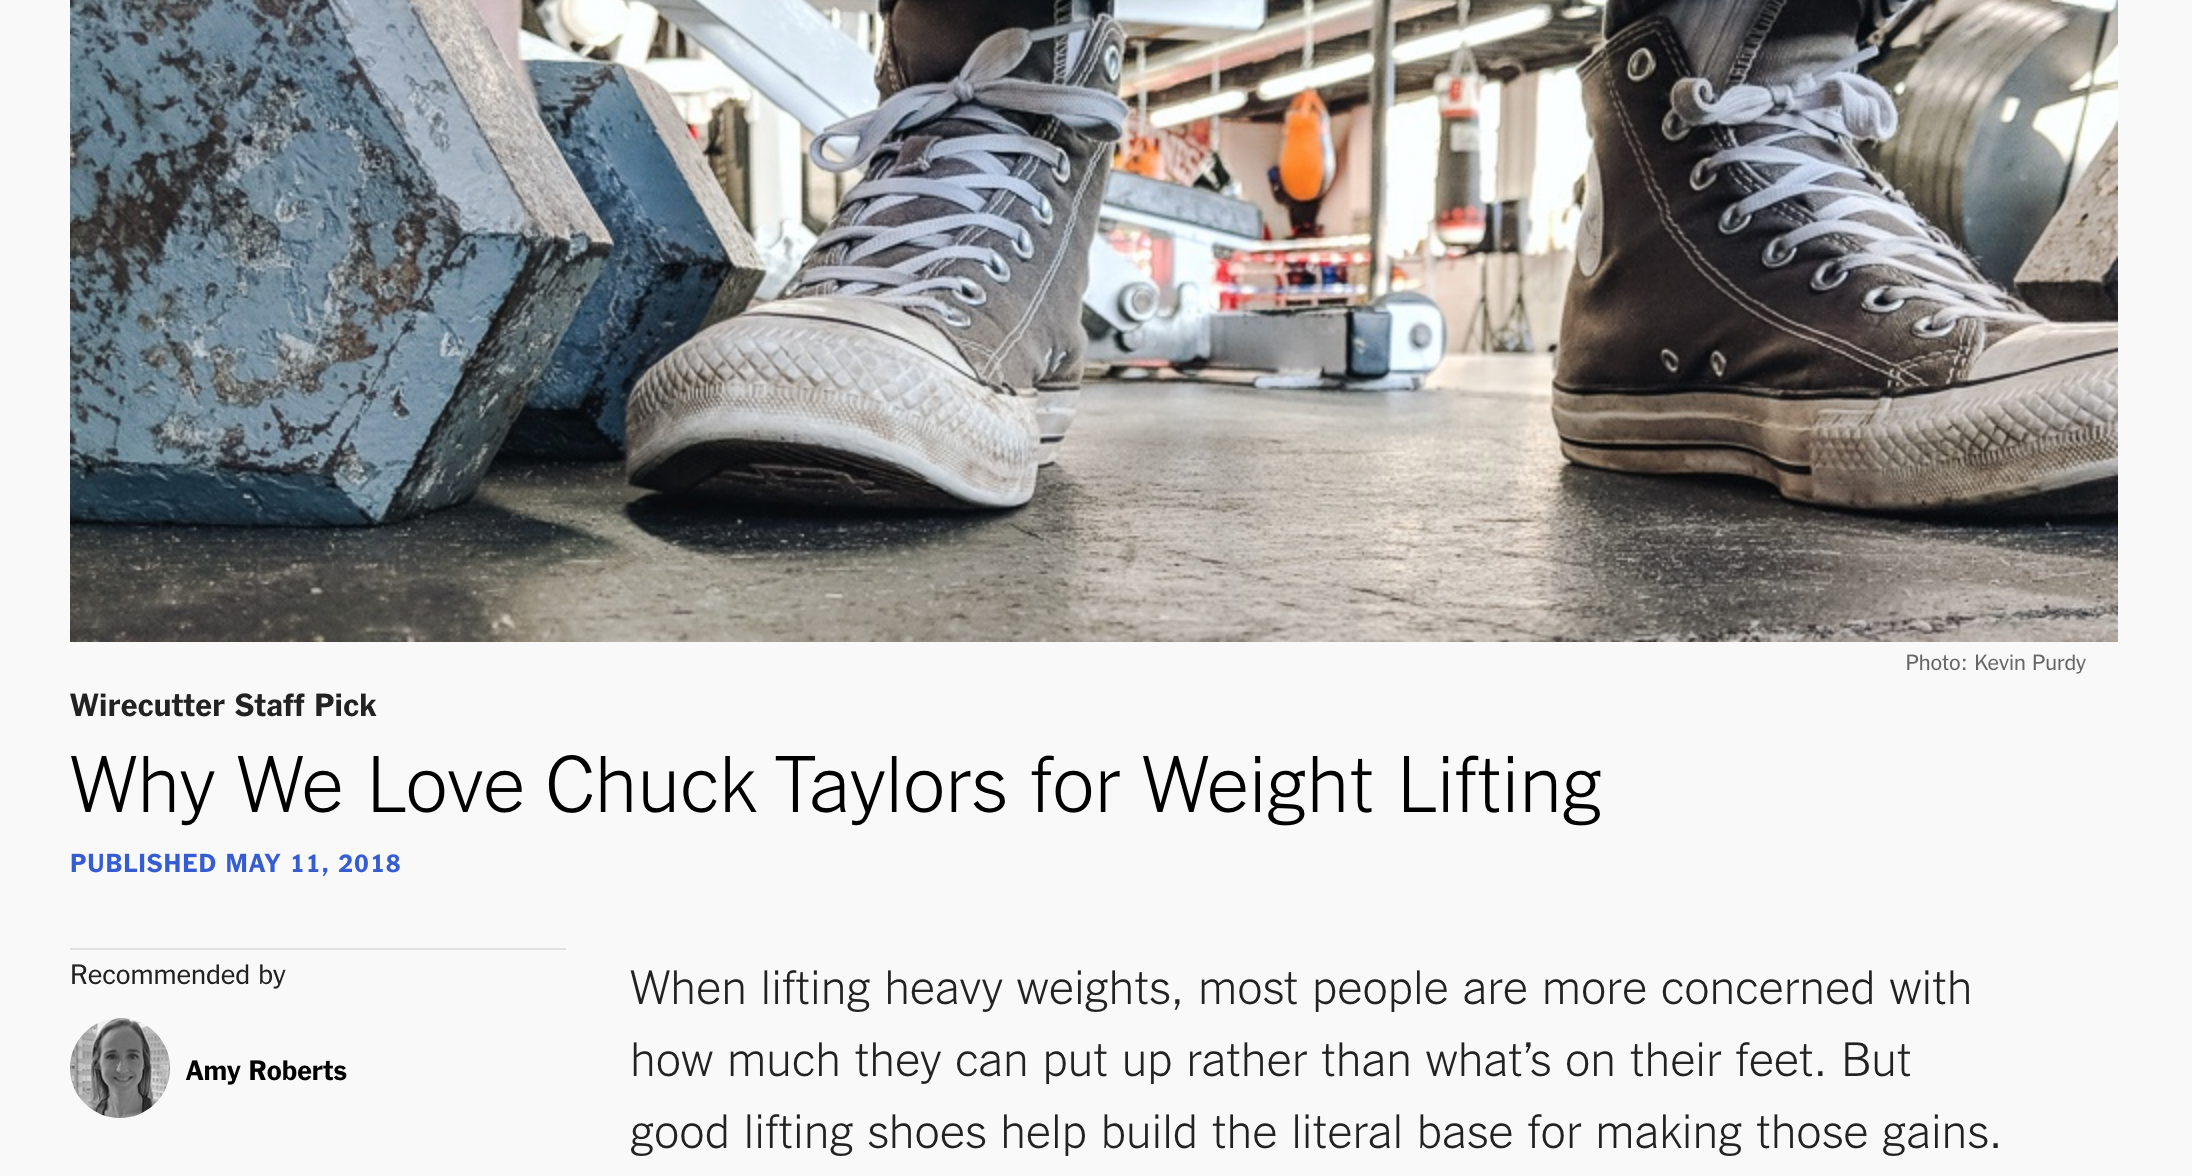 Chucks-for-lifting-wirecutter